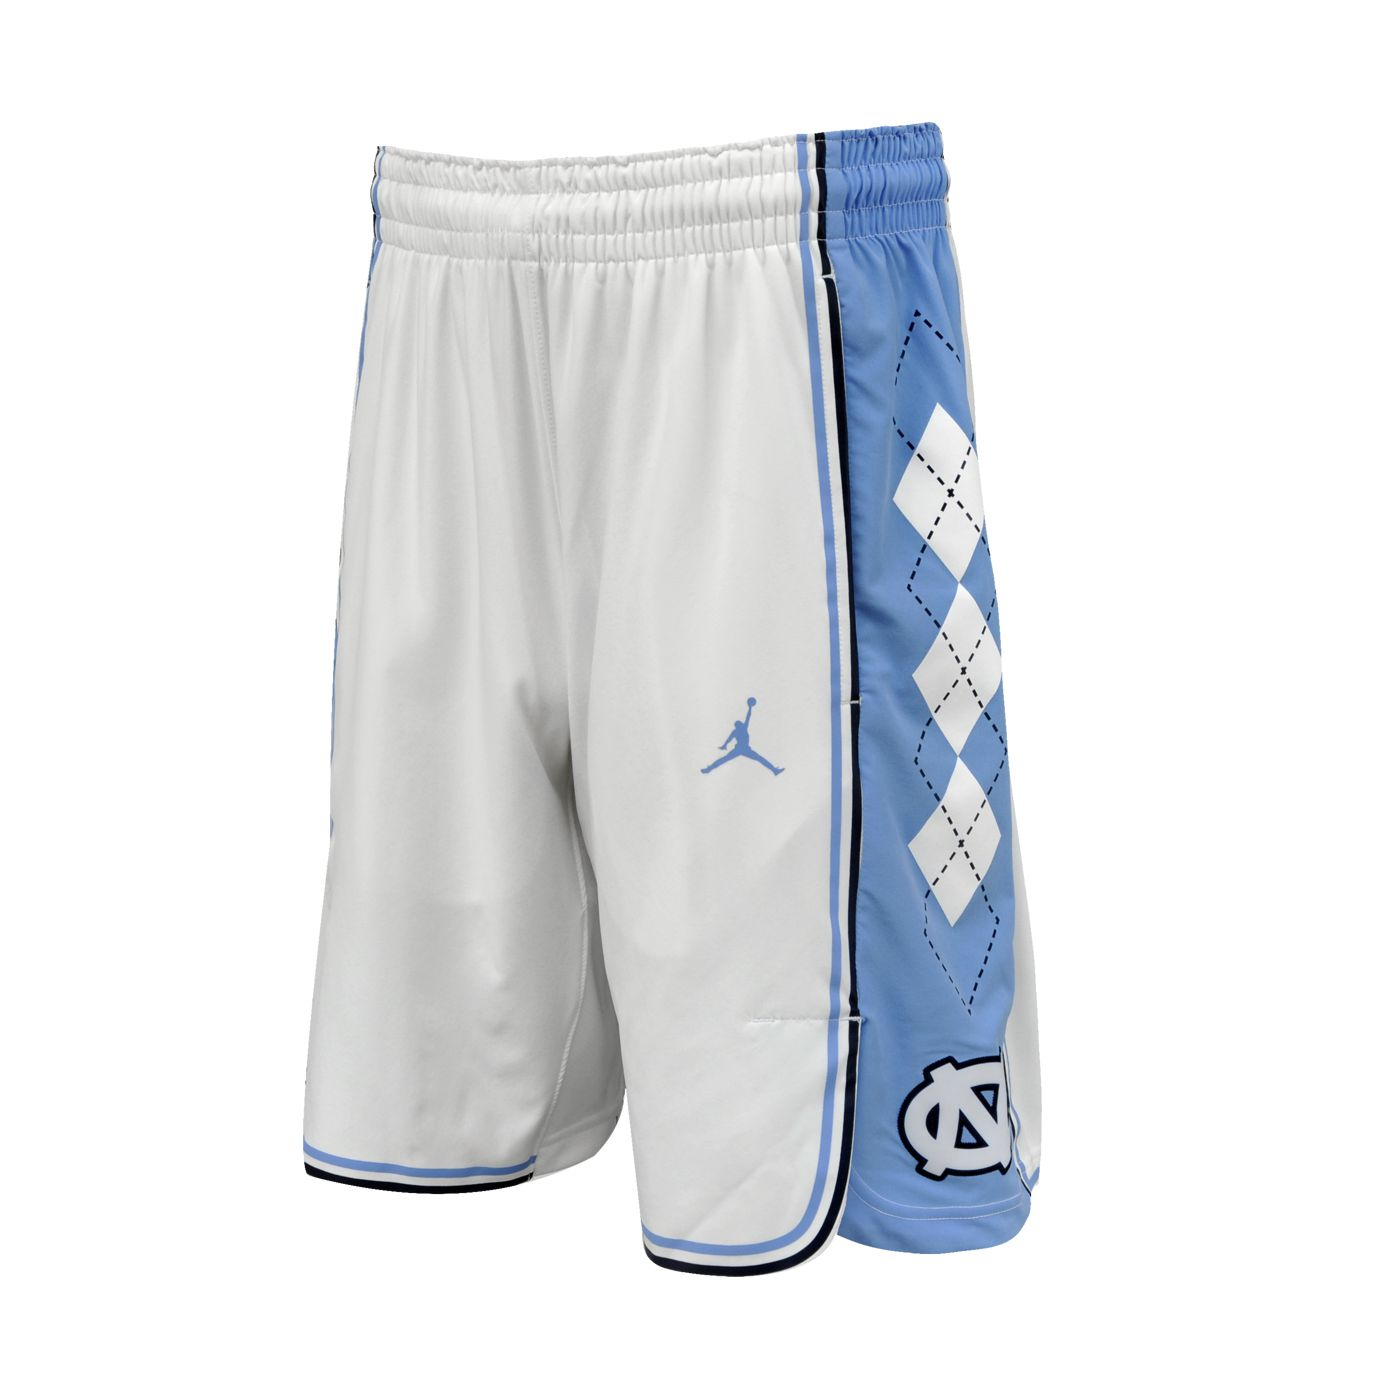 4480fba7f14763 ... Johnny T-shirt - North Carolina Tar Heels - Basketball - Nike Authentic  Basketball Shorts Mens Brand Jordan ...